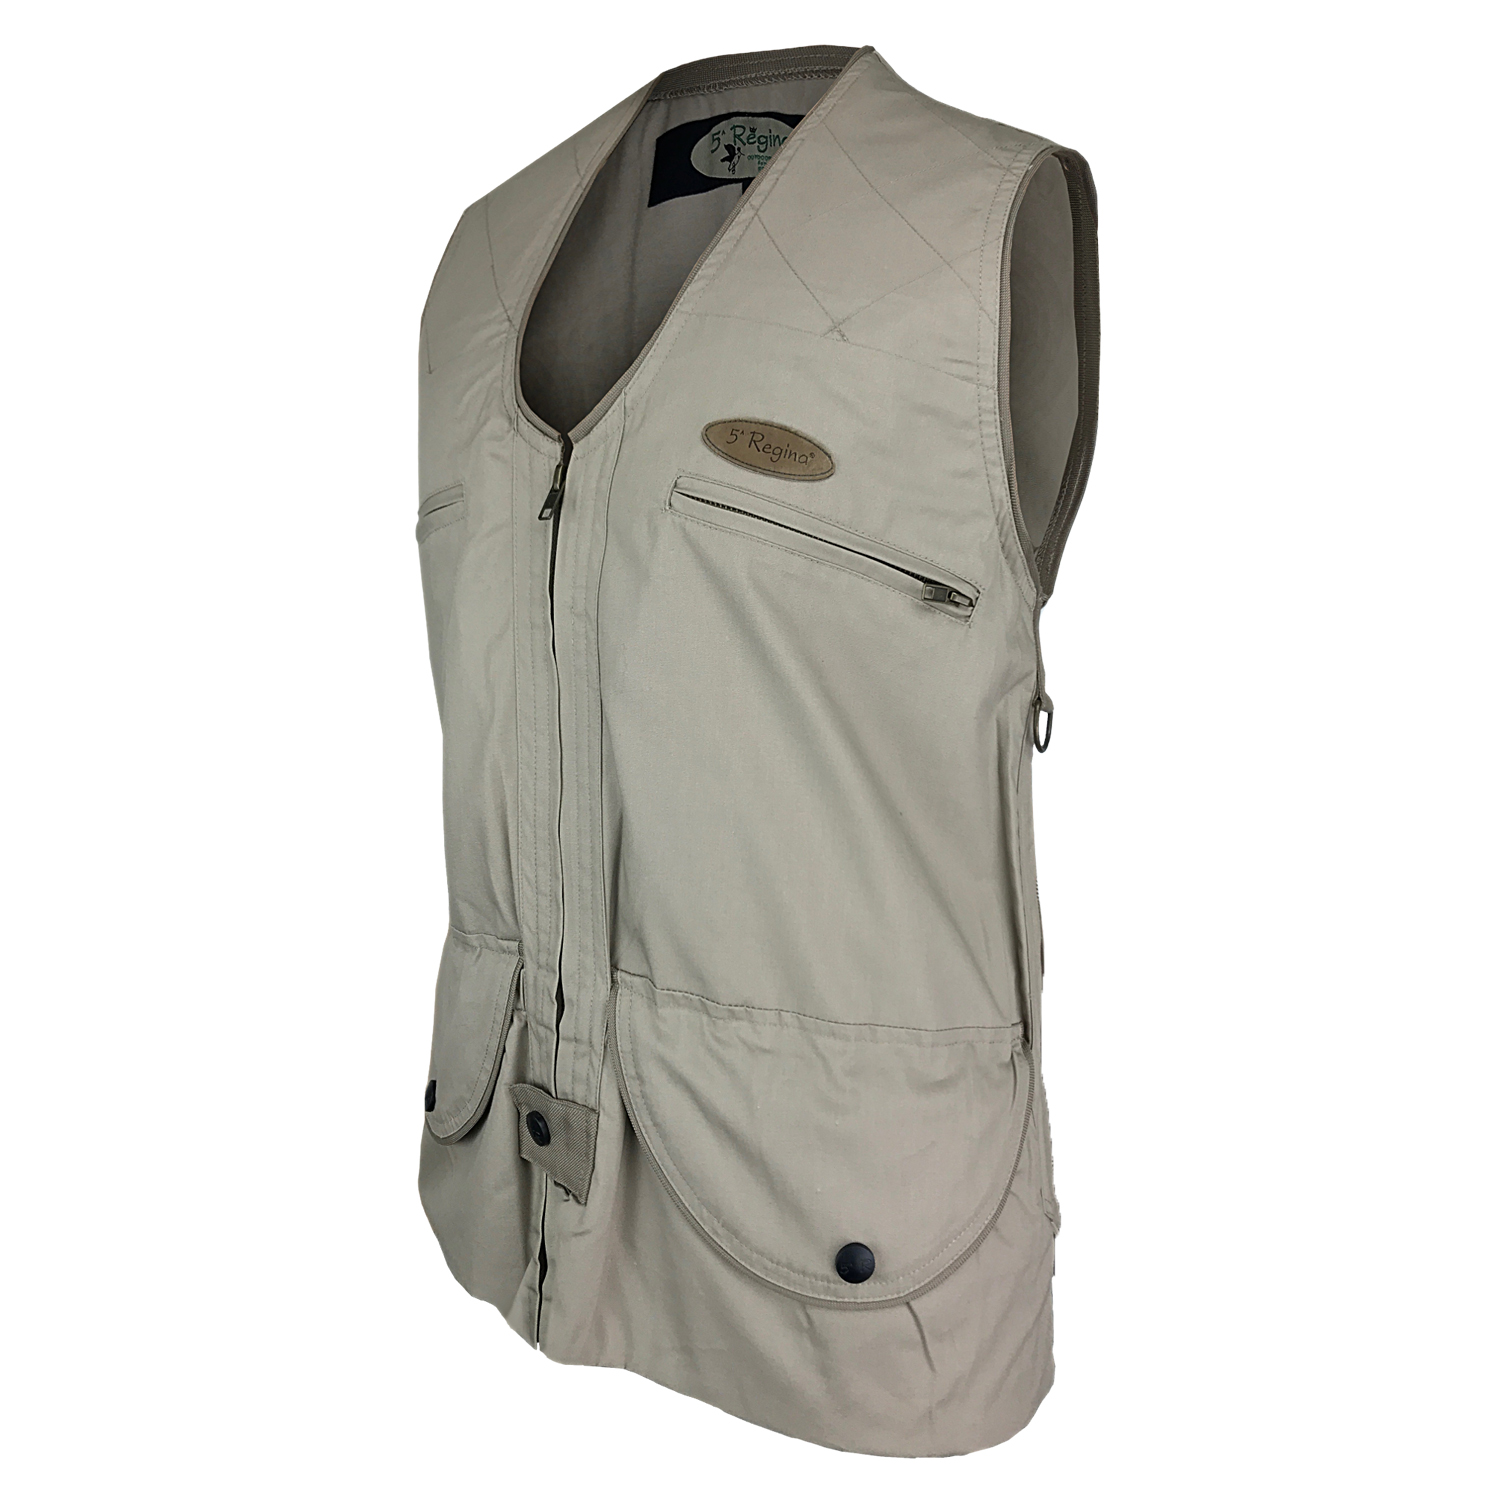 Sleeveless vest waistcoat hunting double pouch lined water Repellent